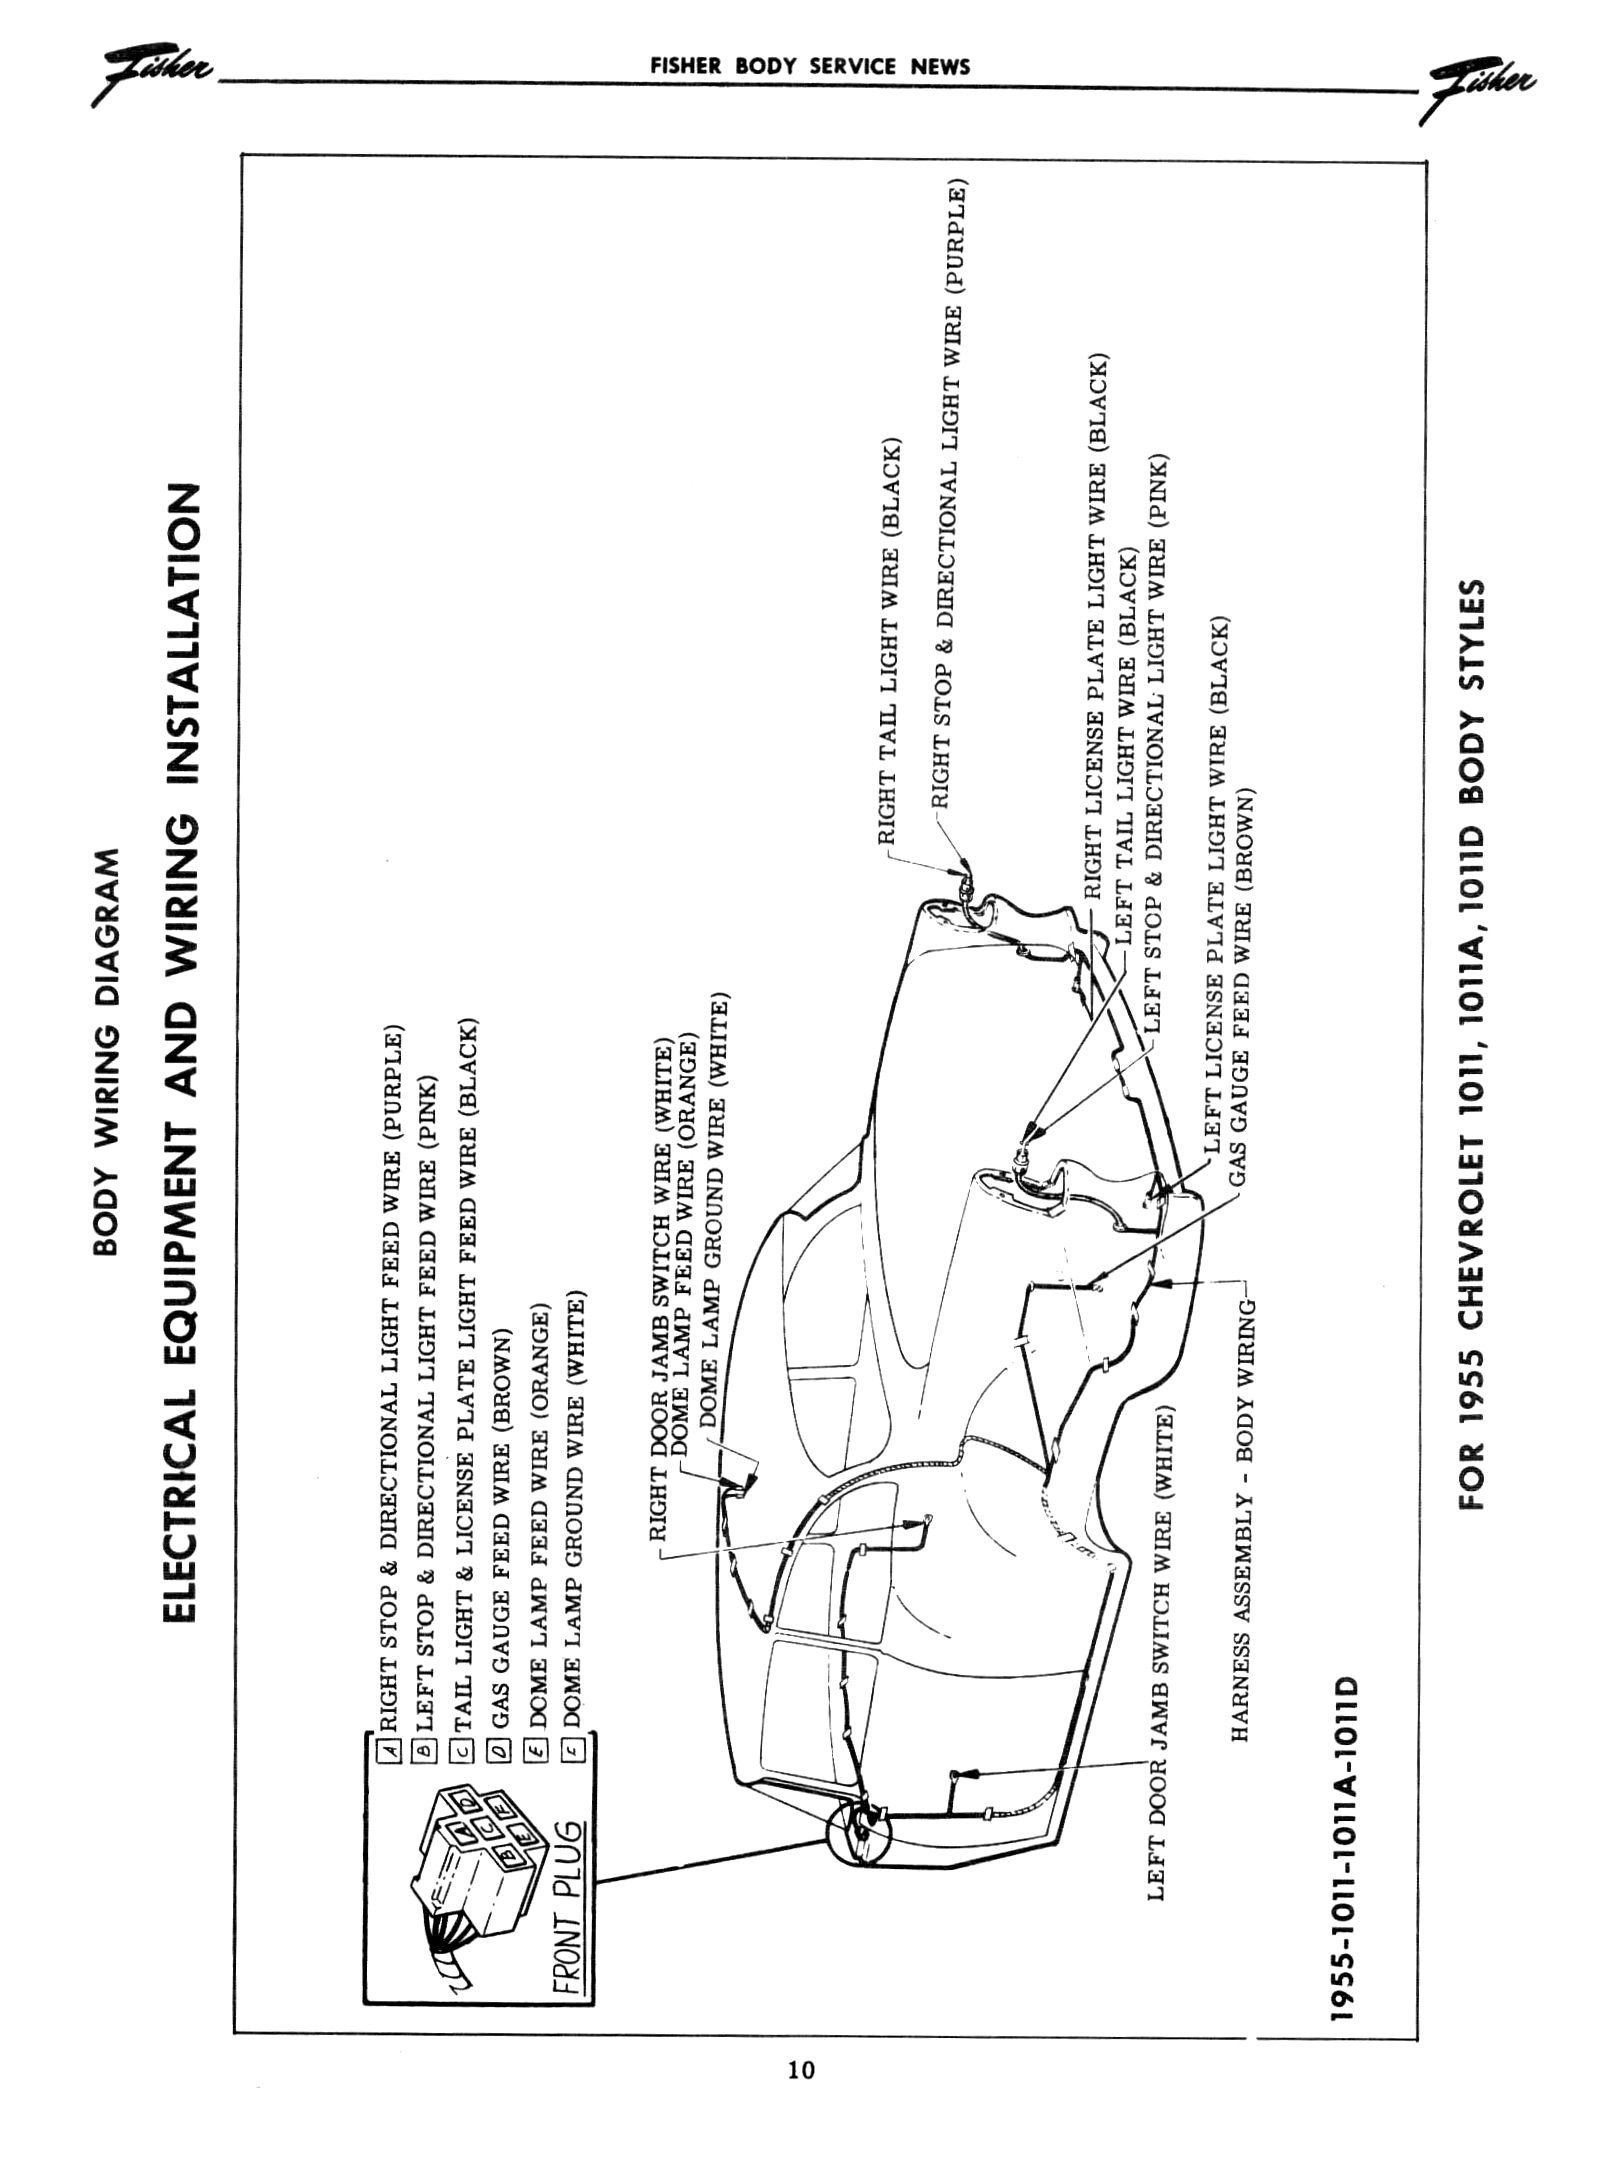 55fsn140610 chevy wiring diagrams 1999 Chevy Silverado Wire Diagram at gsmportal.co